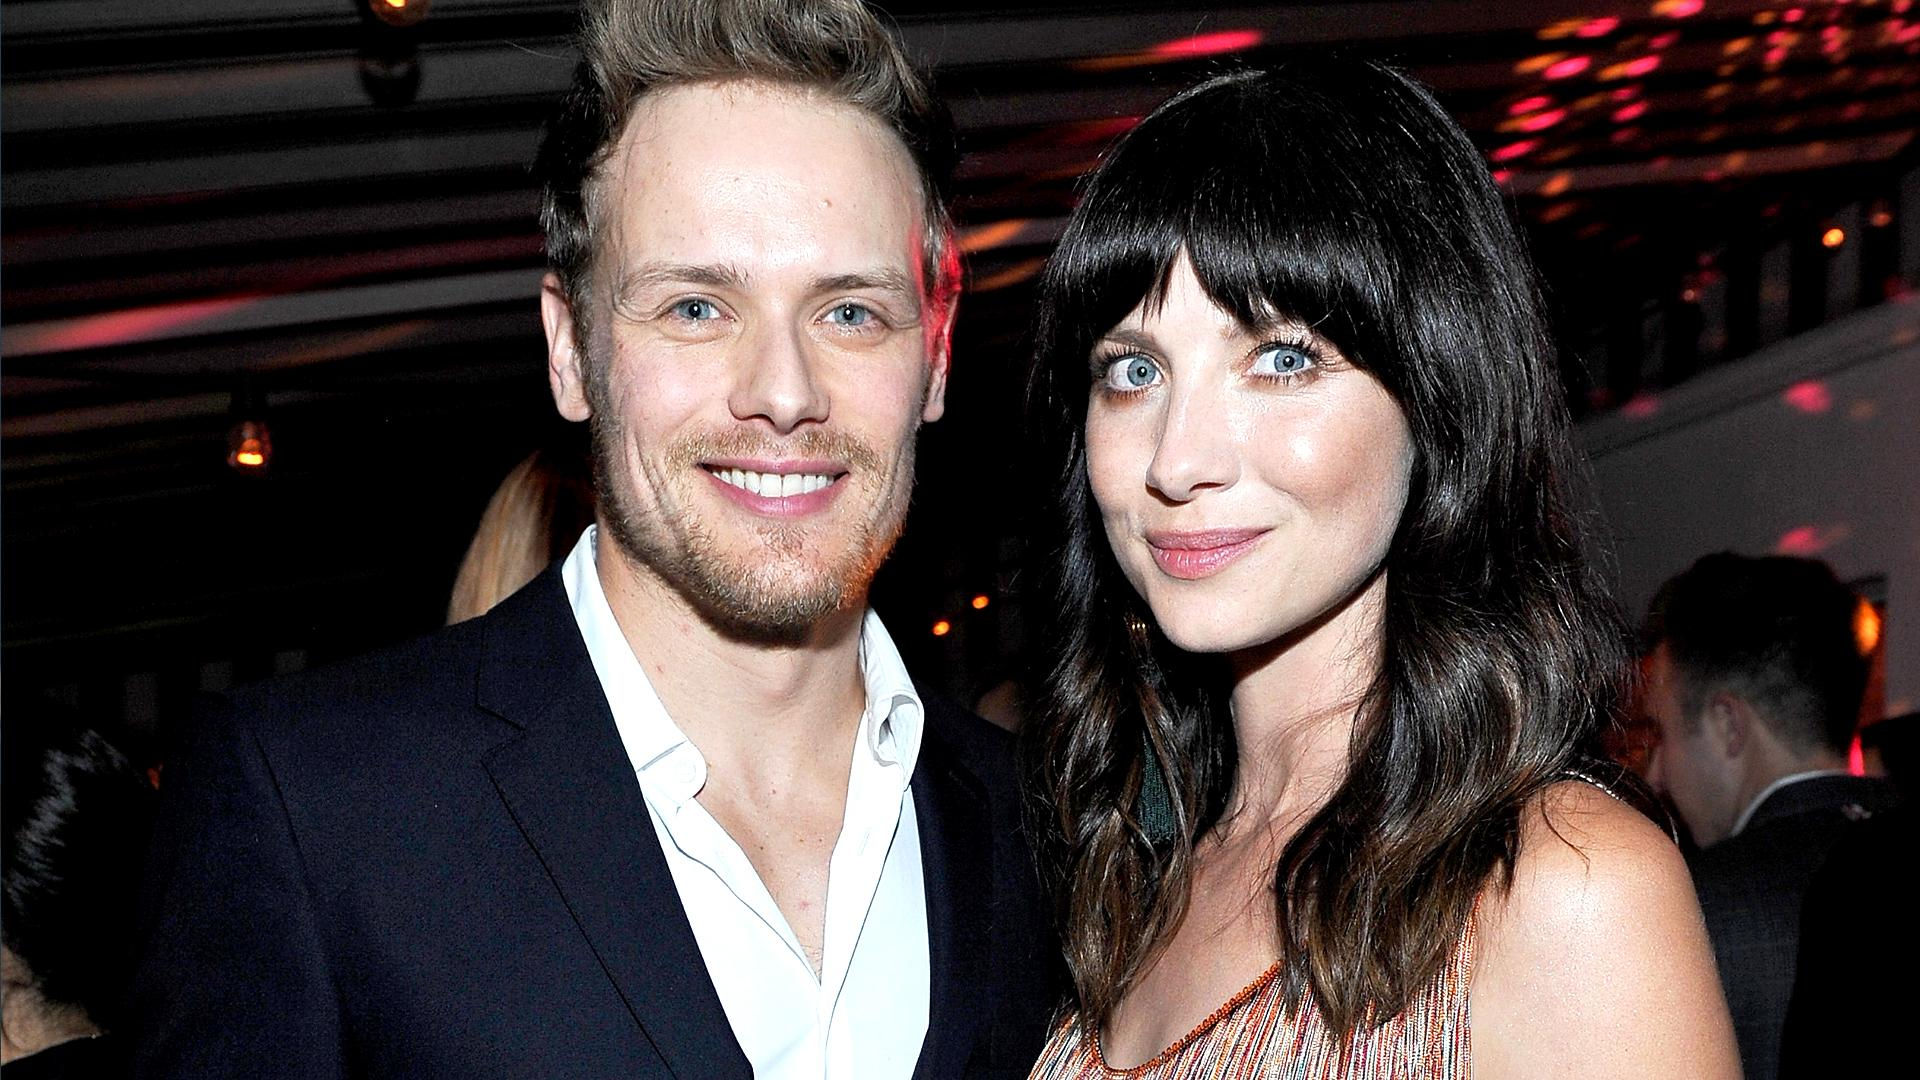 'Outlander' Stars Caitriona Balfe and Sam Heughan Adorably Pose Together at  Pre-Golden Globes Party!